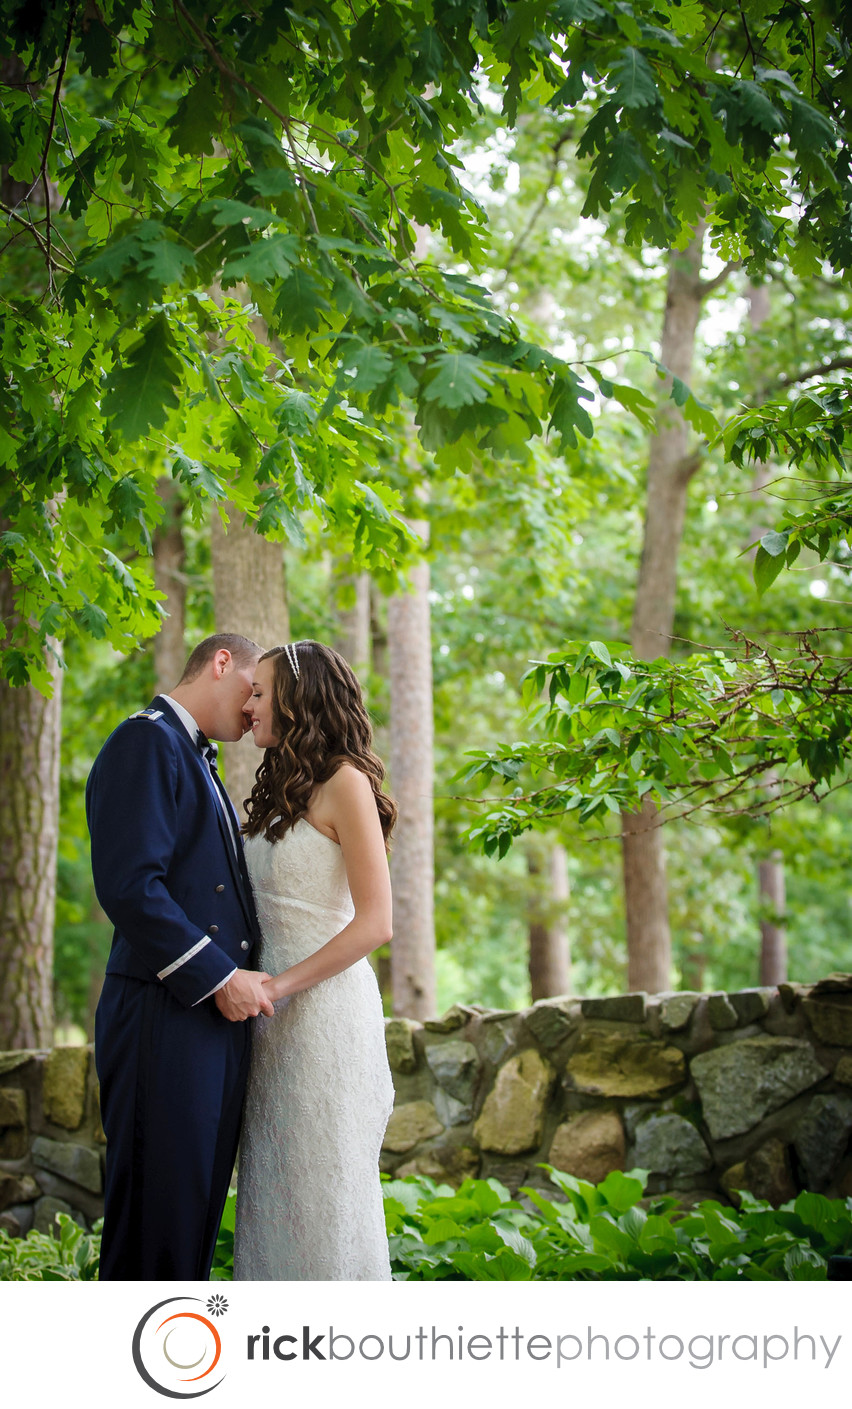 LOVE IN THE PARK - VIRGINIA BEACH WEDDING